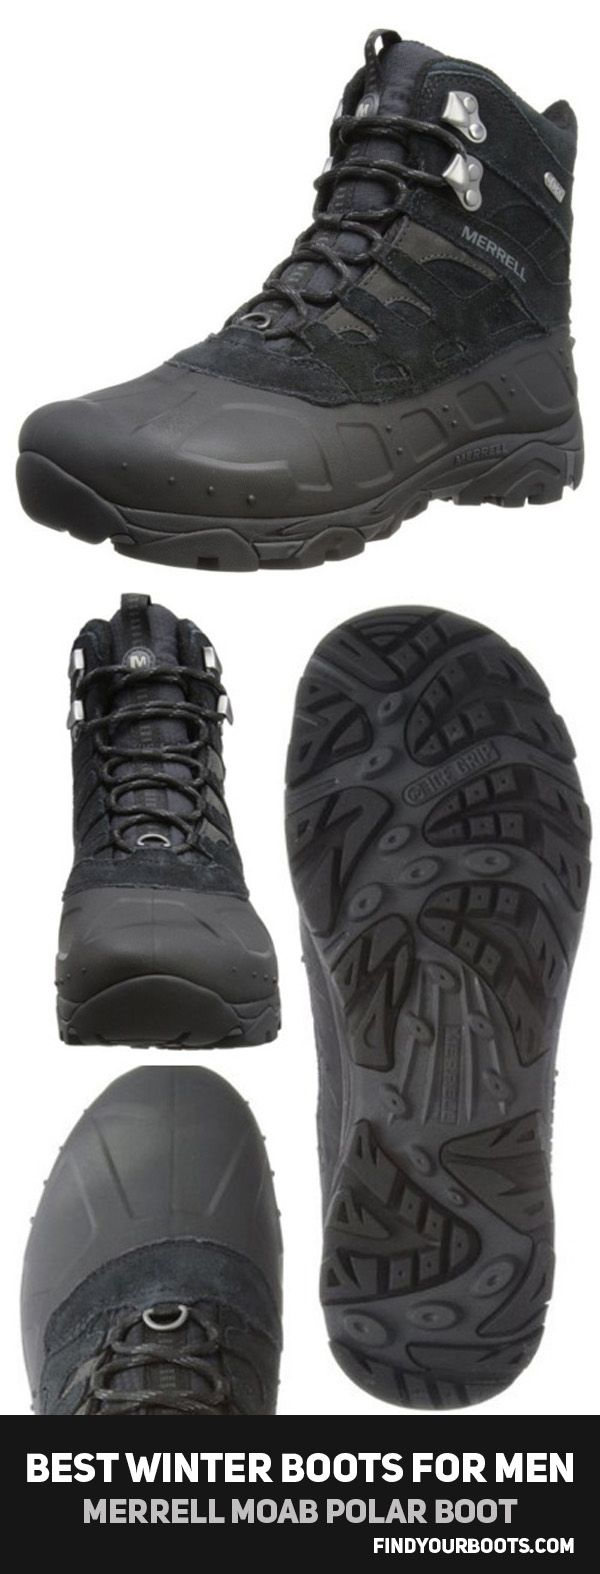 Find out what other mens snow boots made the list of our Best Winter Boots for Men http://www.findyourboots.com/best-mens-boots-for-winter-2017/